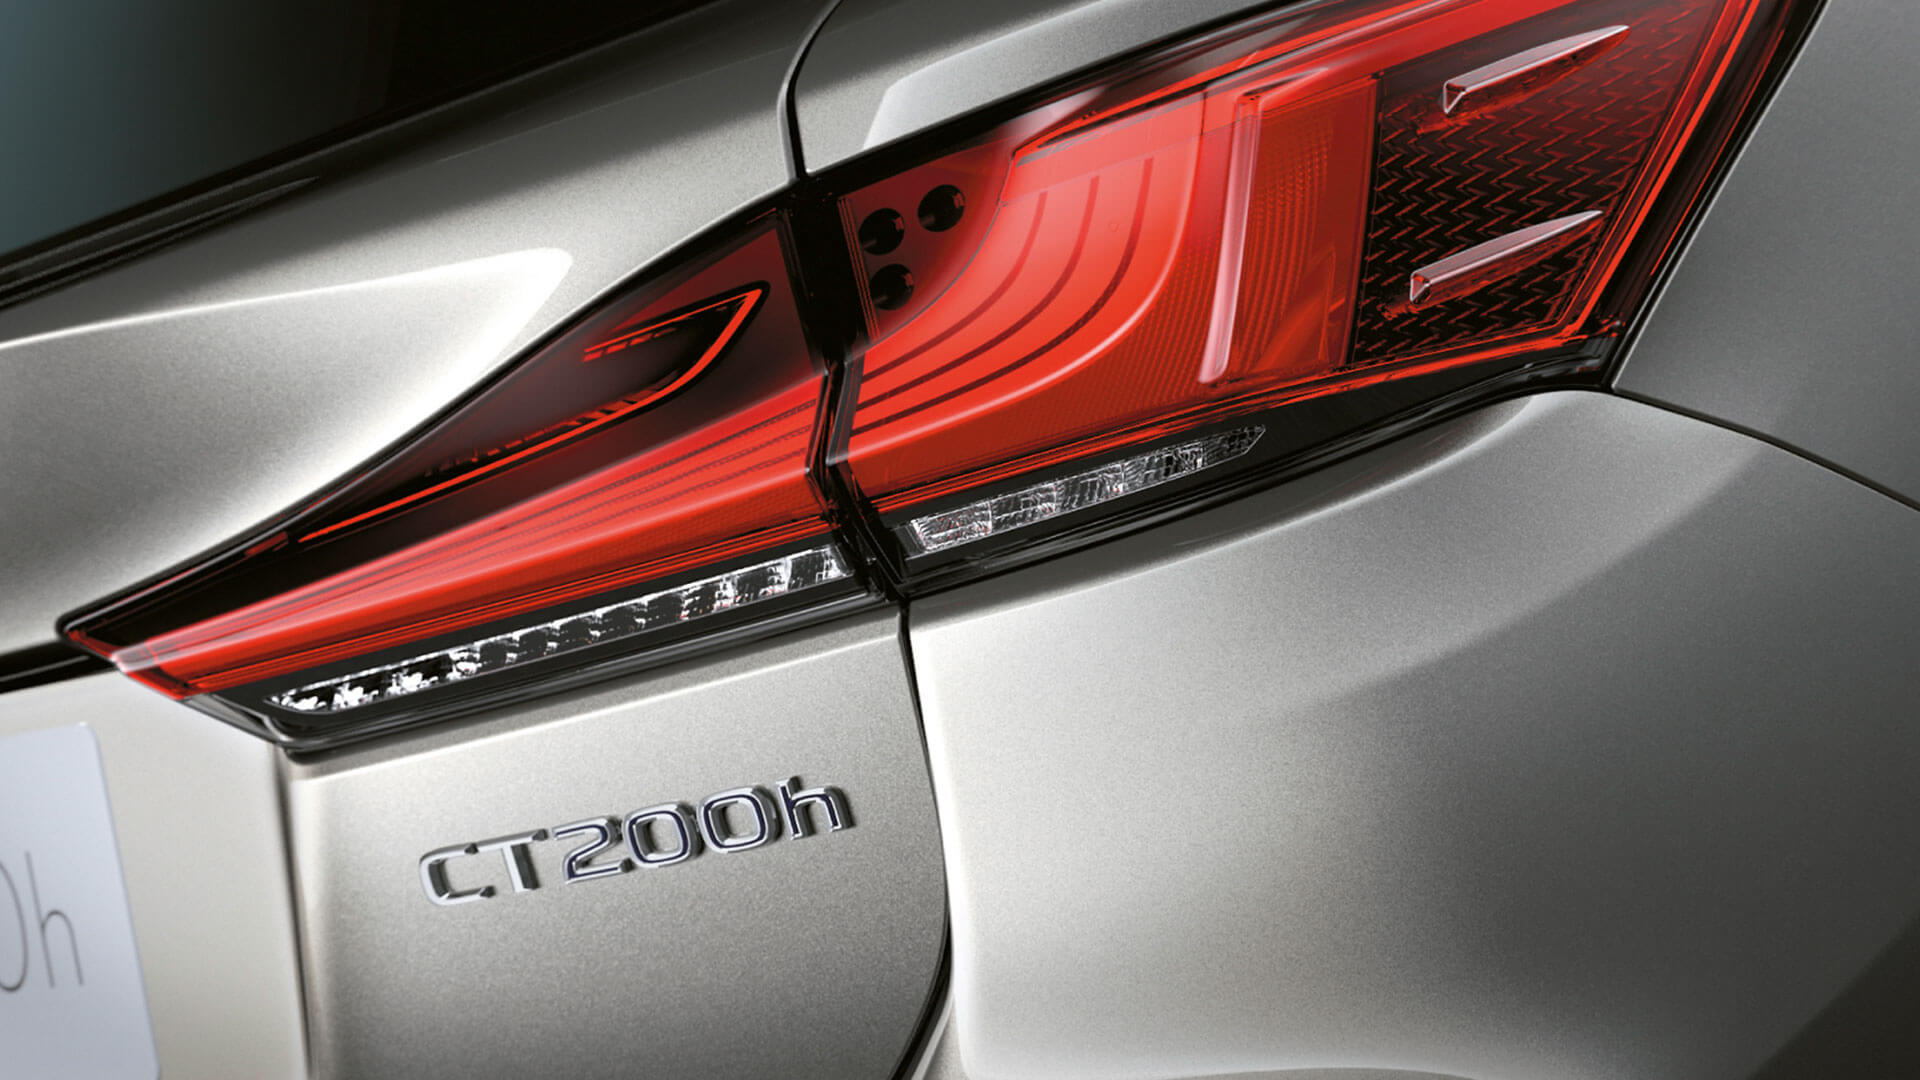 2018 lexus ct 200h my18 features led rear lights